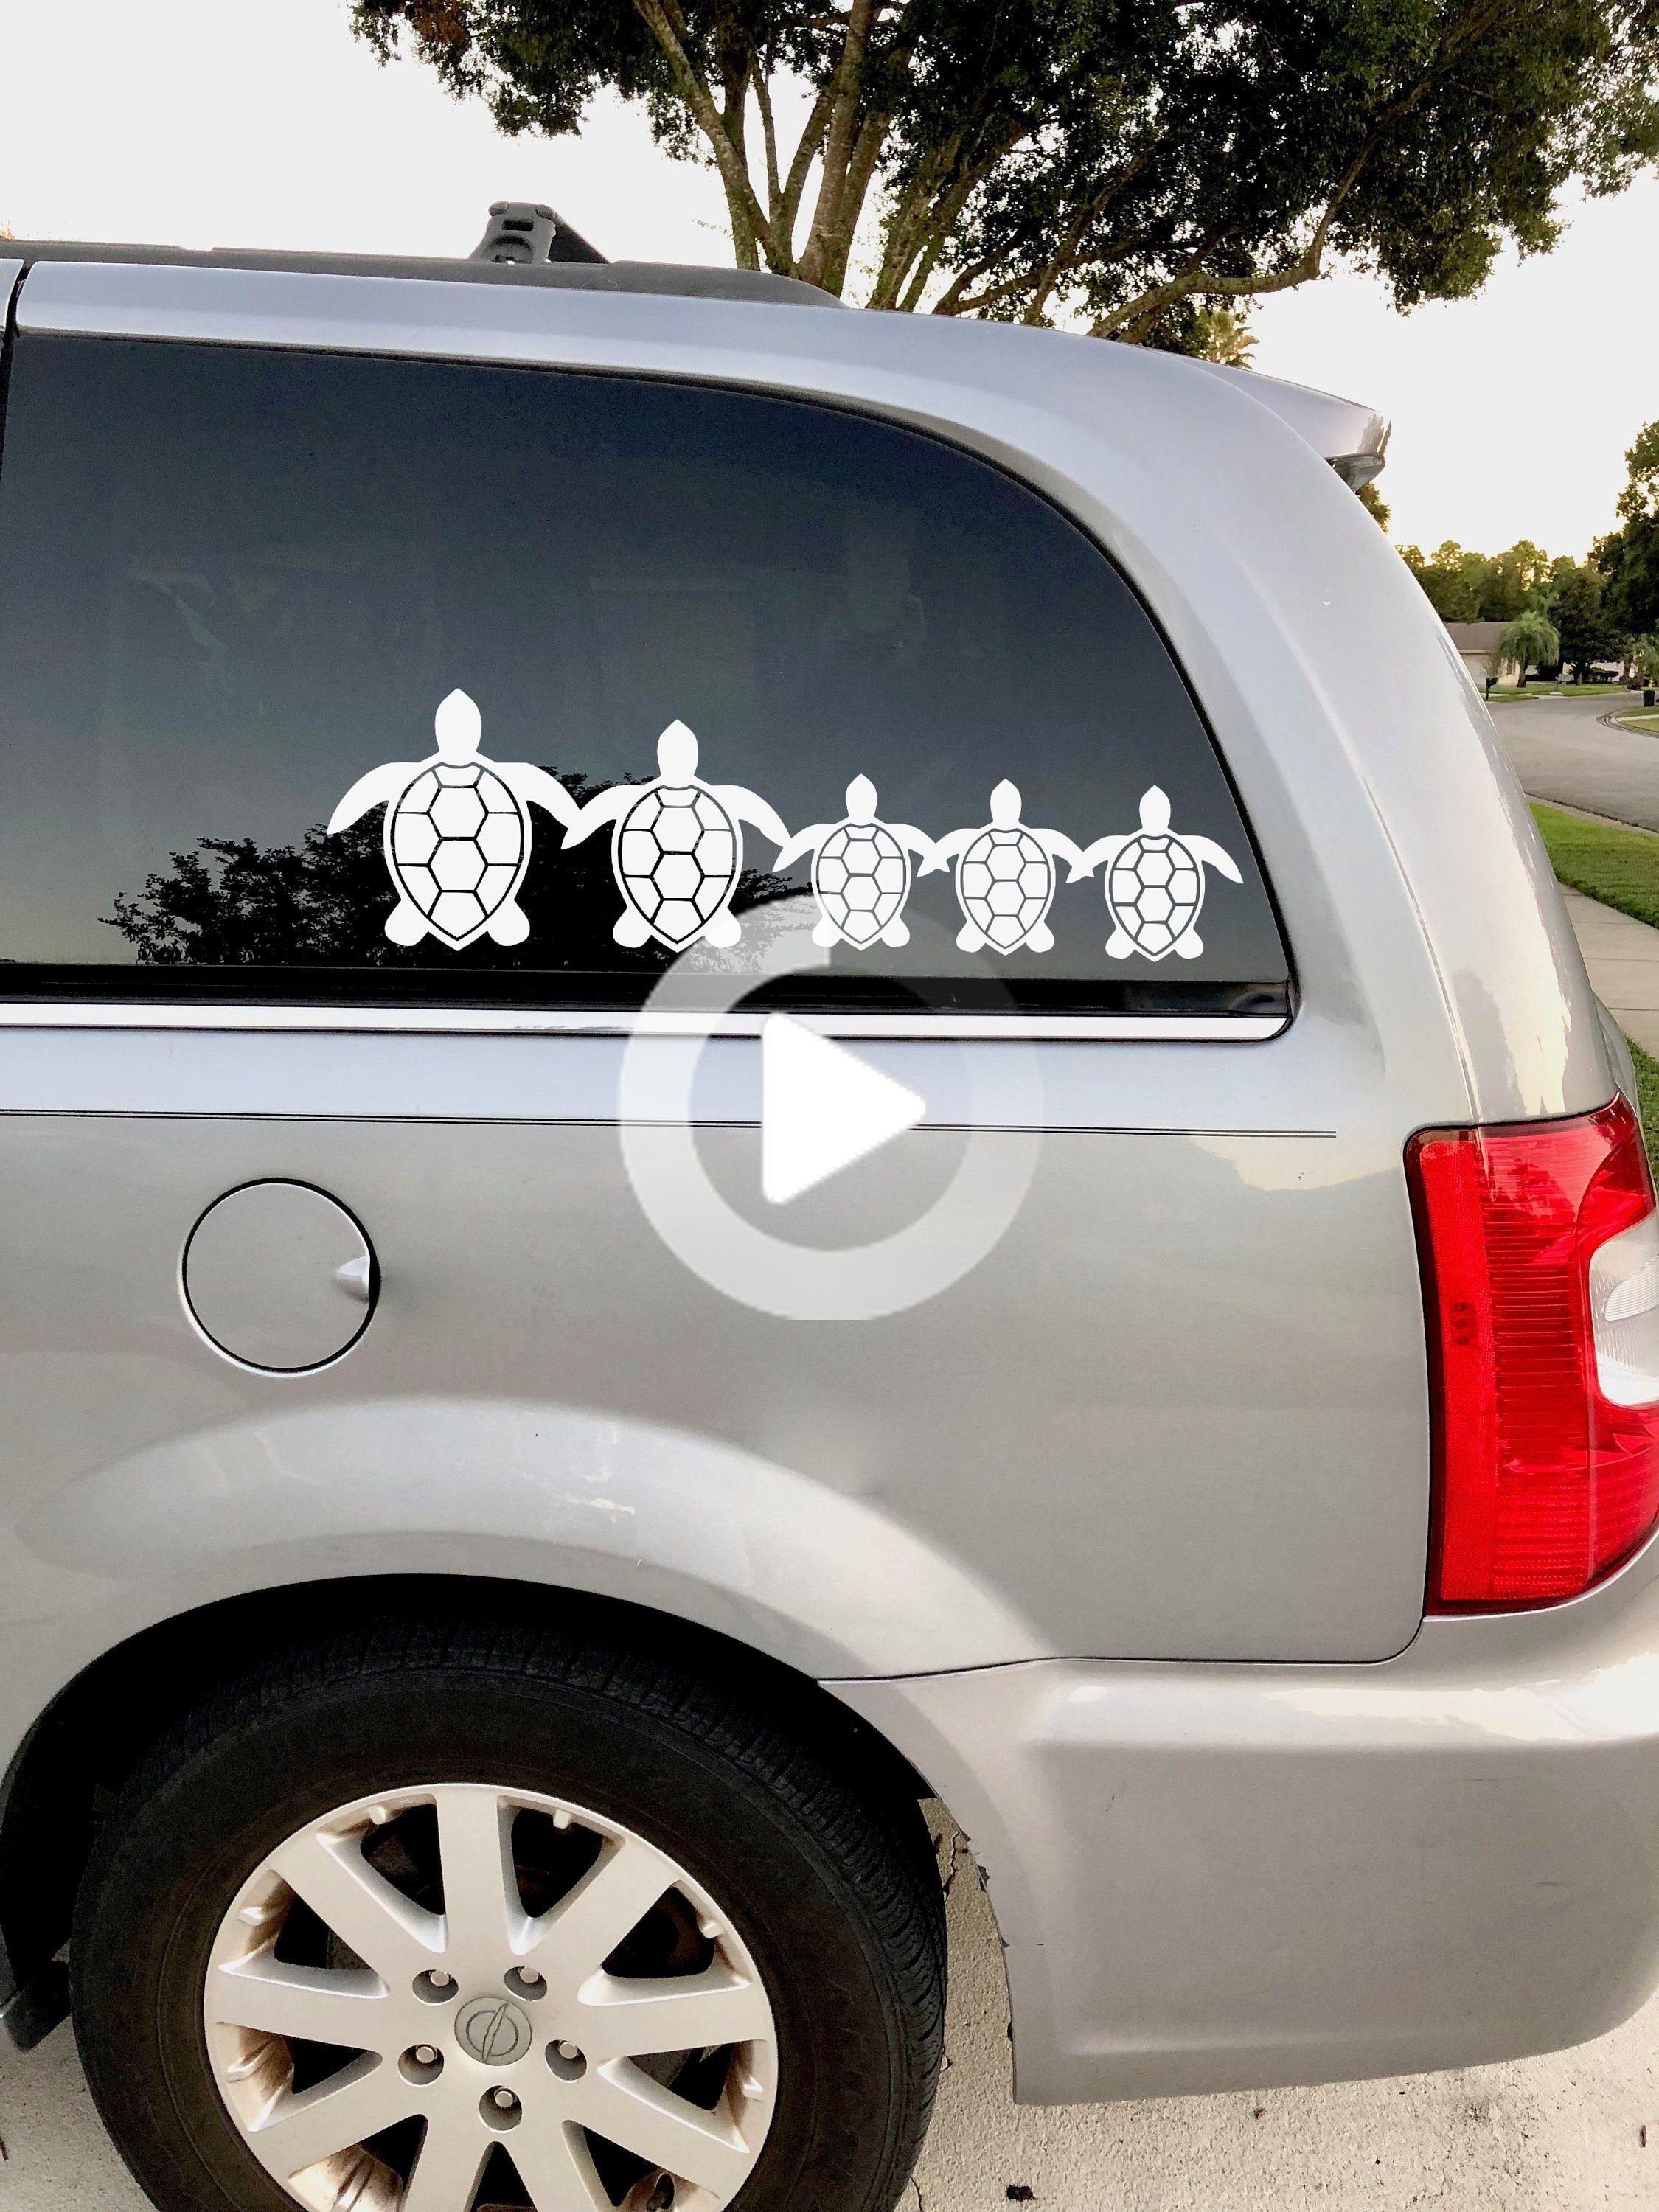 Turtle Family Vinyl Decal Turtle Car Decal Tropical Car Etsy In 2020 Turtle Car Vinyl Decals Family Car Decals [ 3000 x 2250 Pixel ]